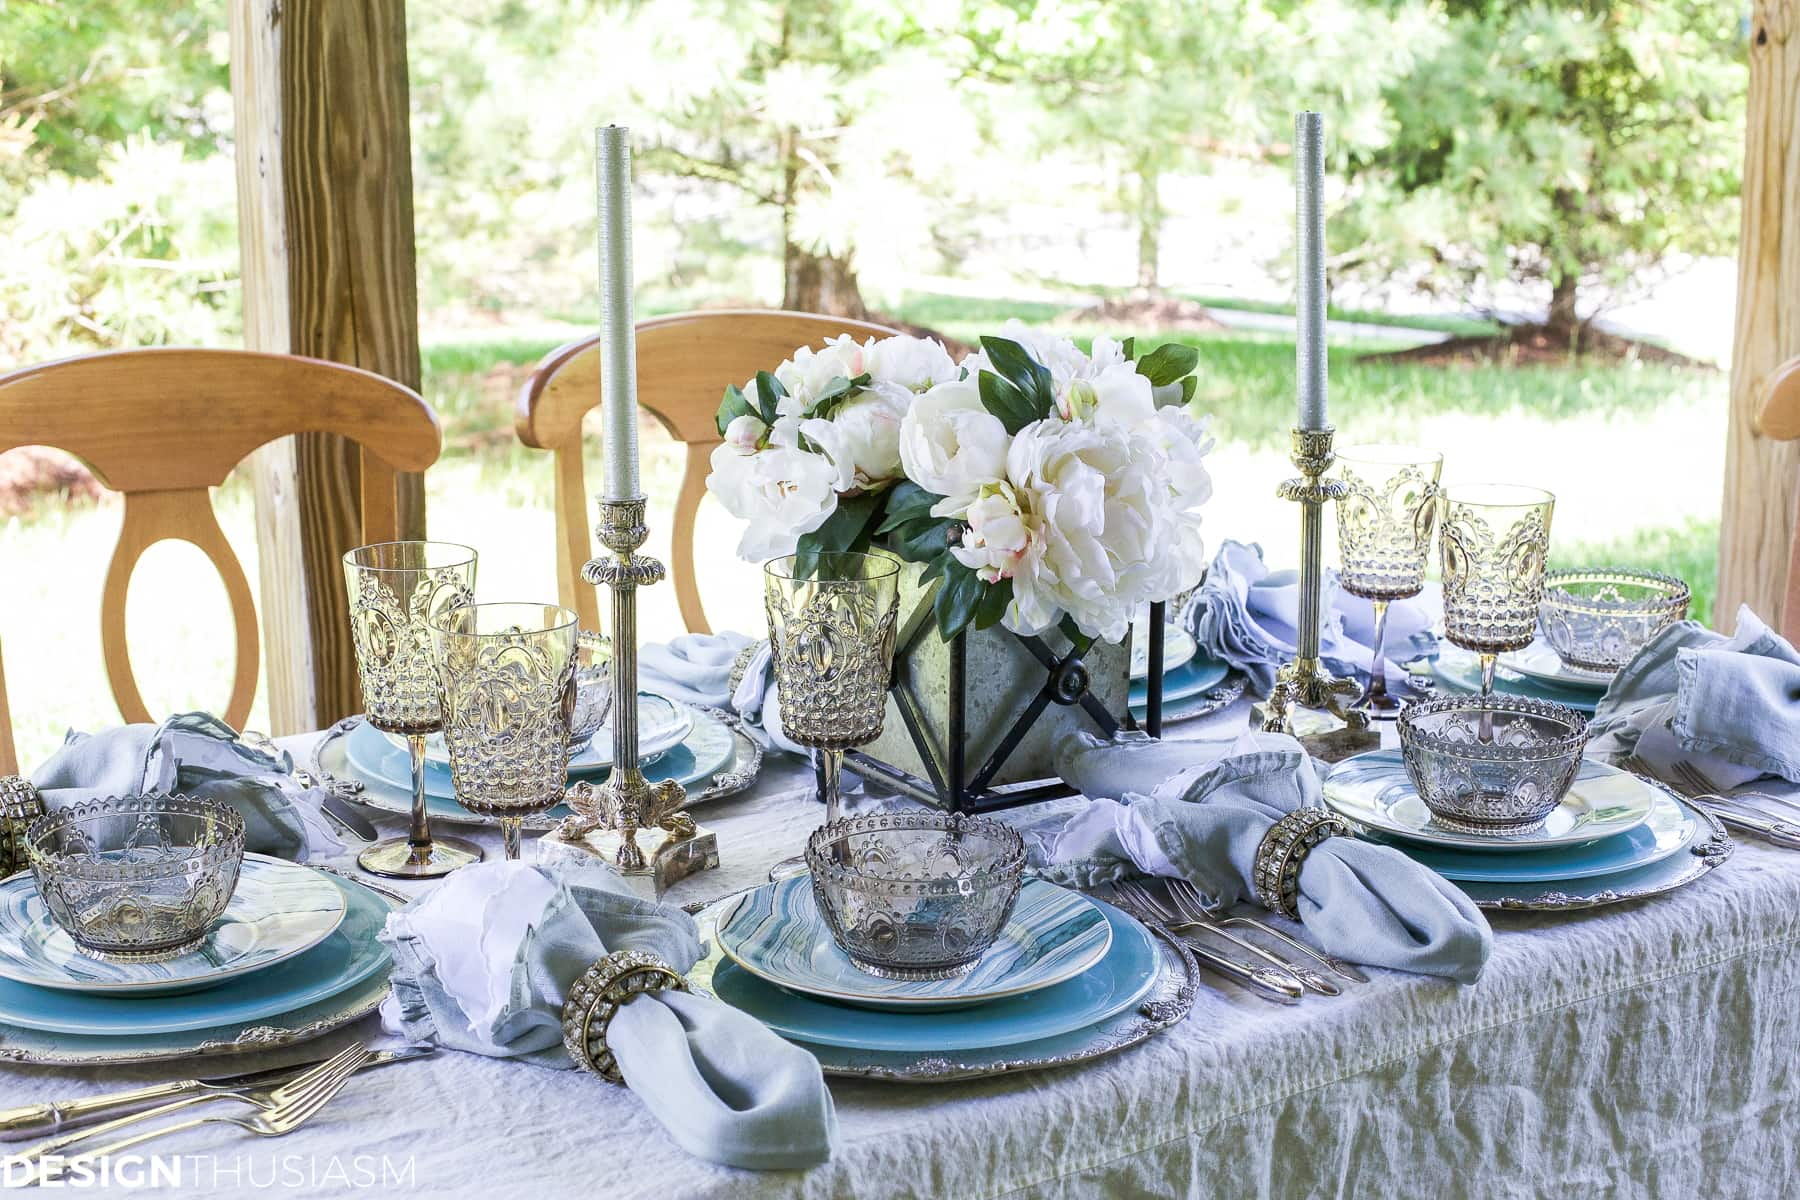 Seaside Decor | Setting a Summer Table with Coastal Dinnerware - designthusiasm.com